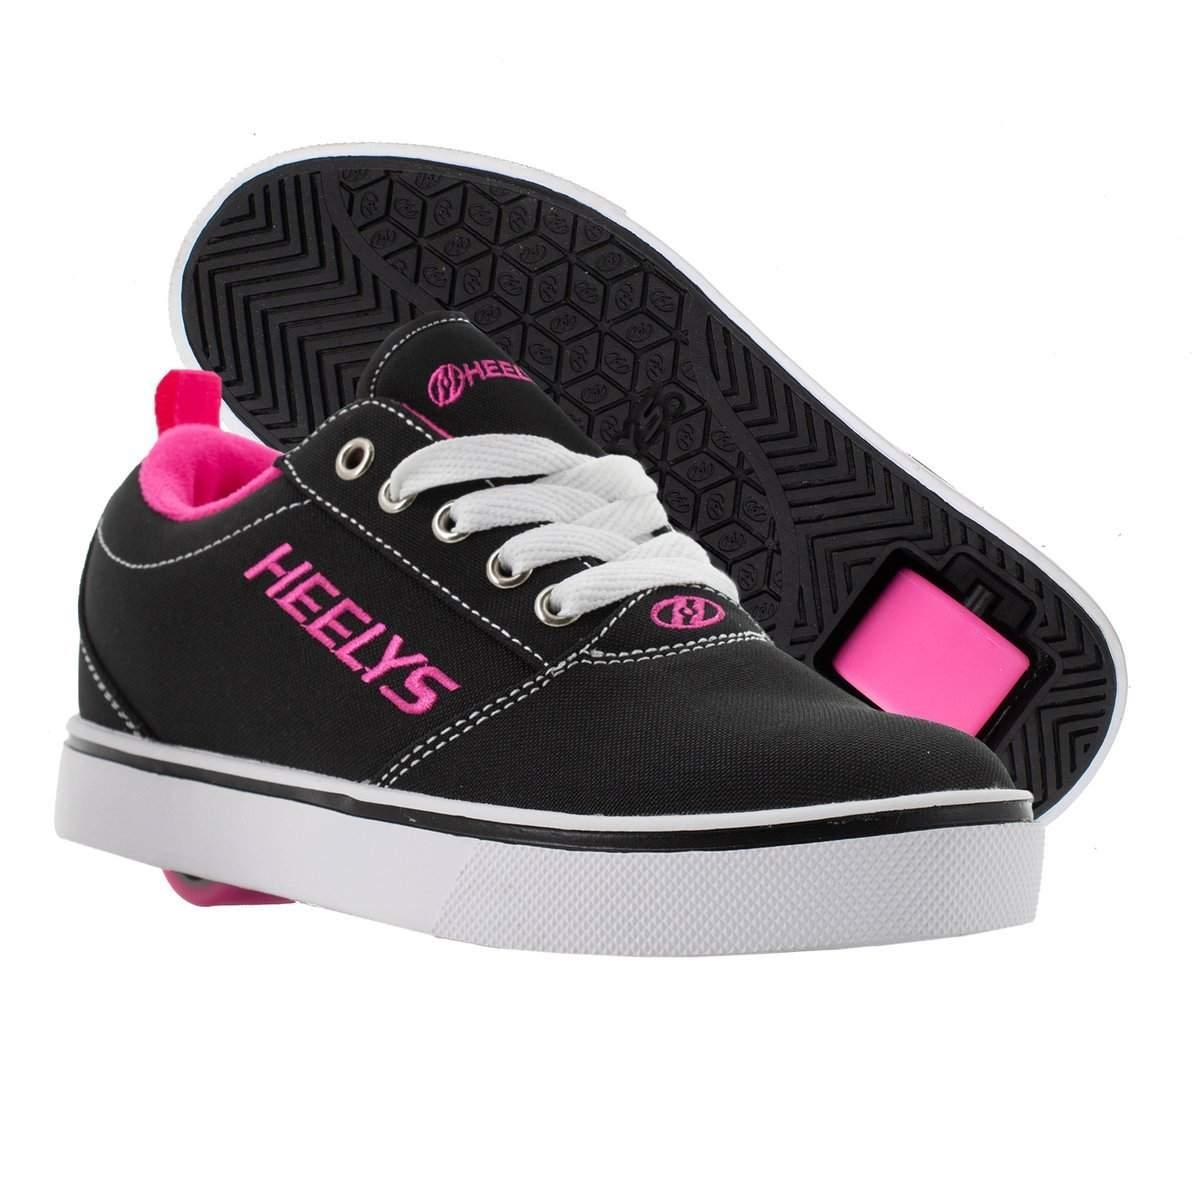 Heelys PRO 20 – Black/White/Pink/ Girls